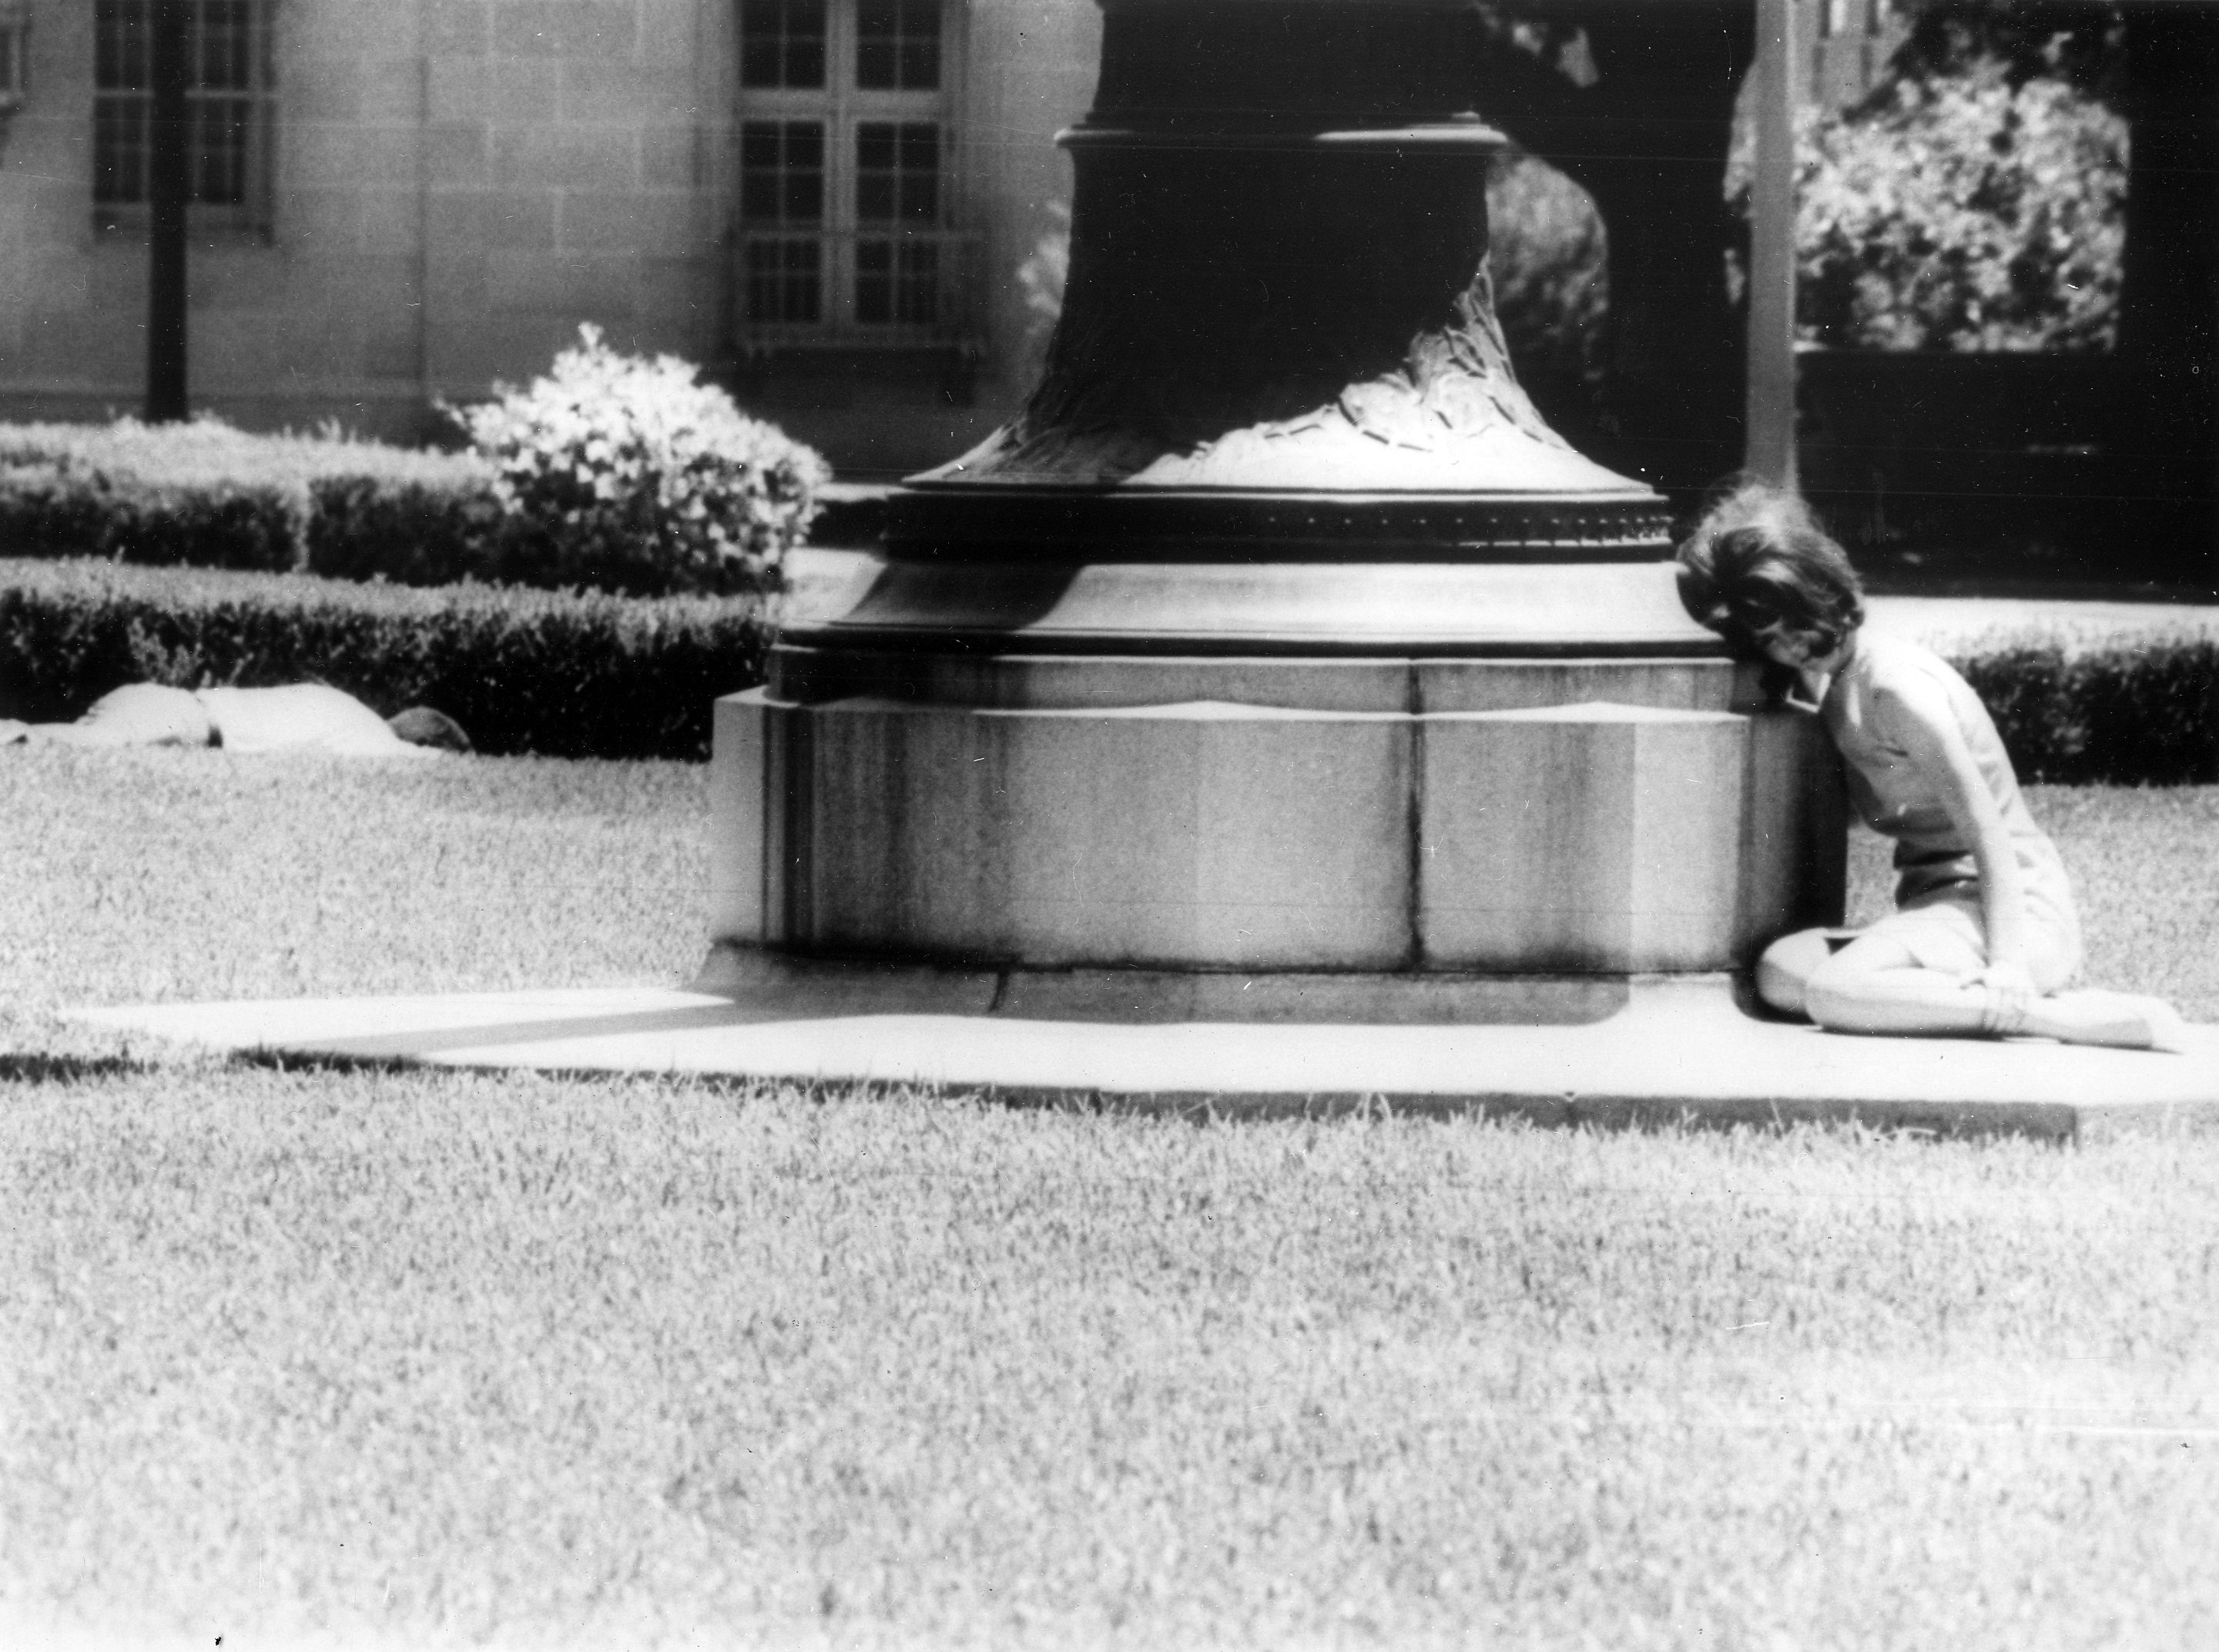 This dramatic photo of a young woman hiding behind a statue as a man lay wounded nearby was taken by a United Press International photographer as Charles Whitman was still firing.